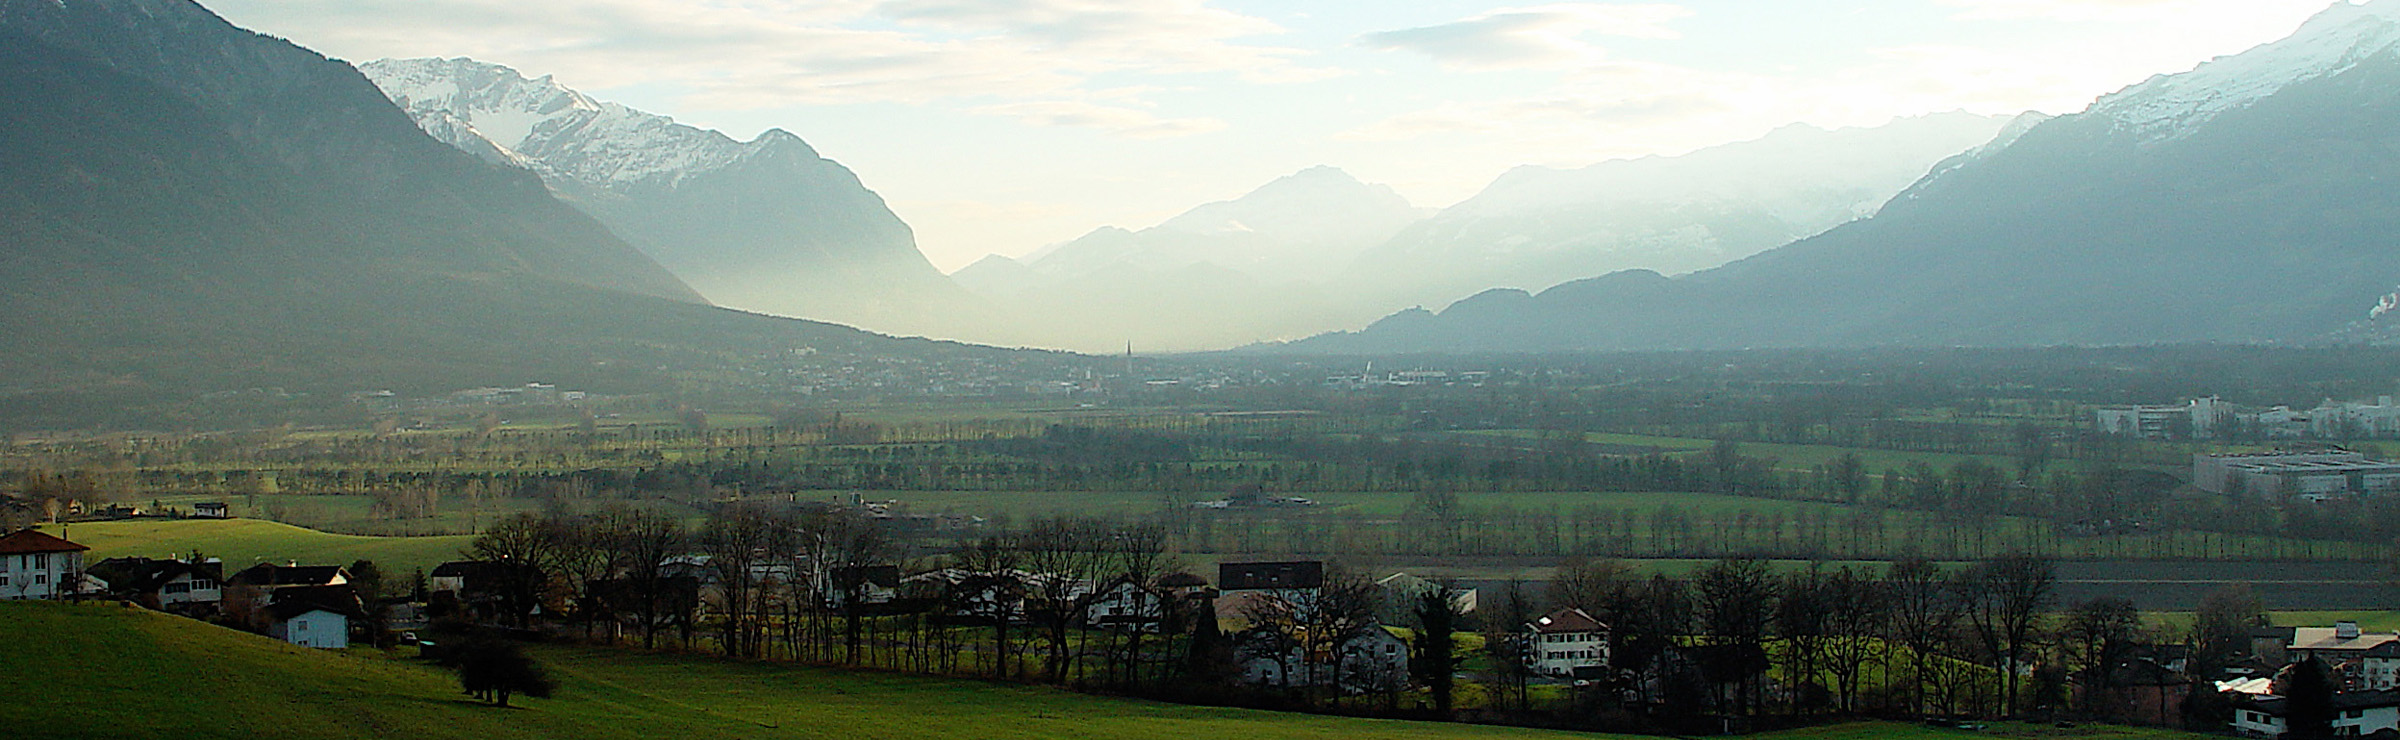 Liechtenstein in the afternoon - by Hellebardius